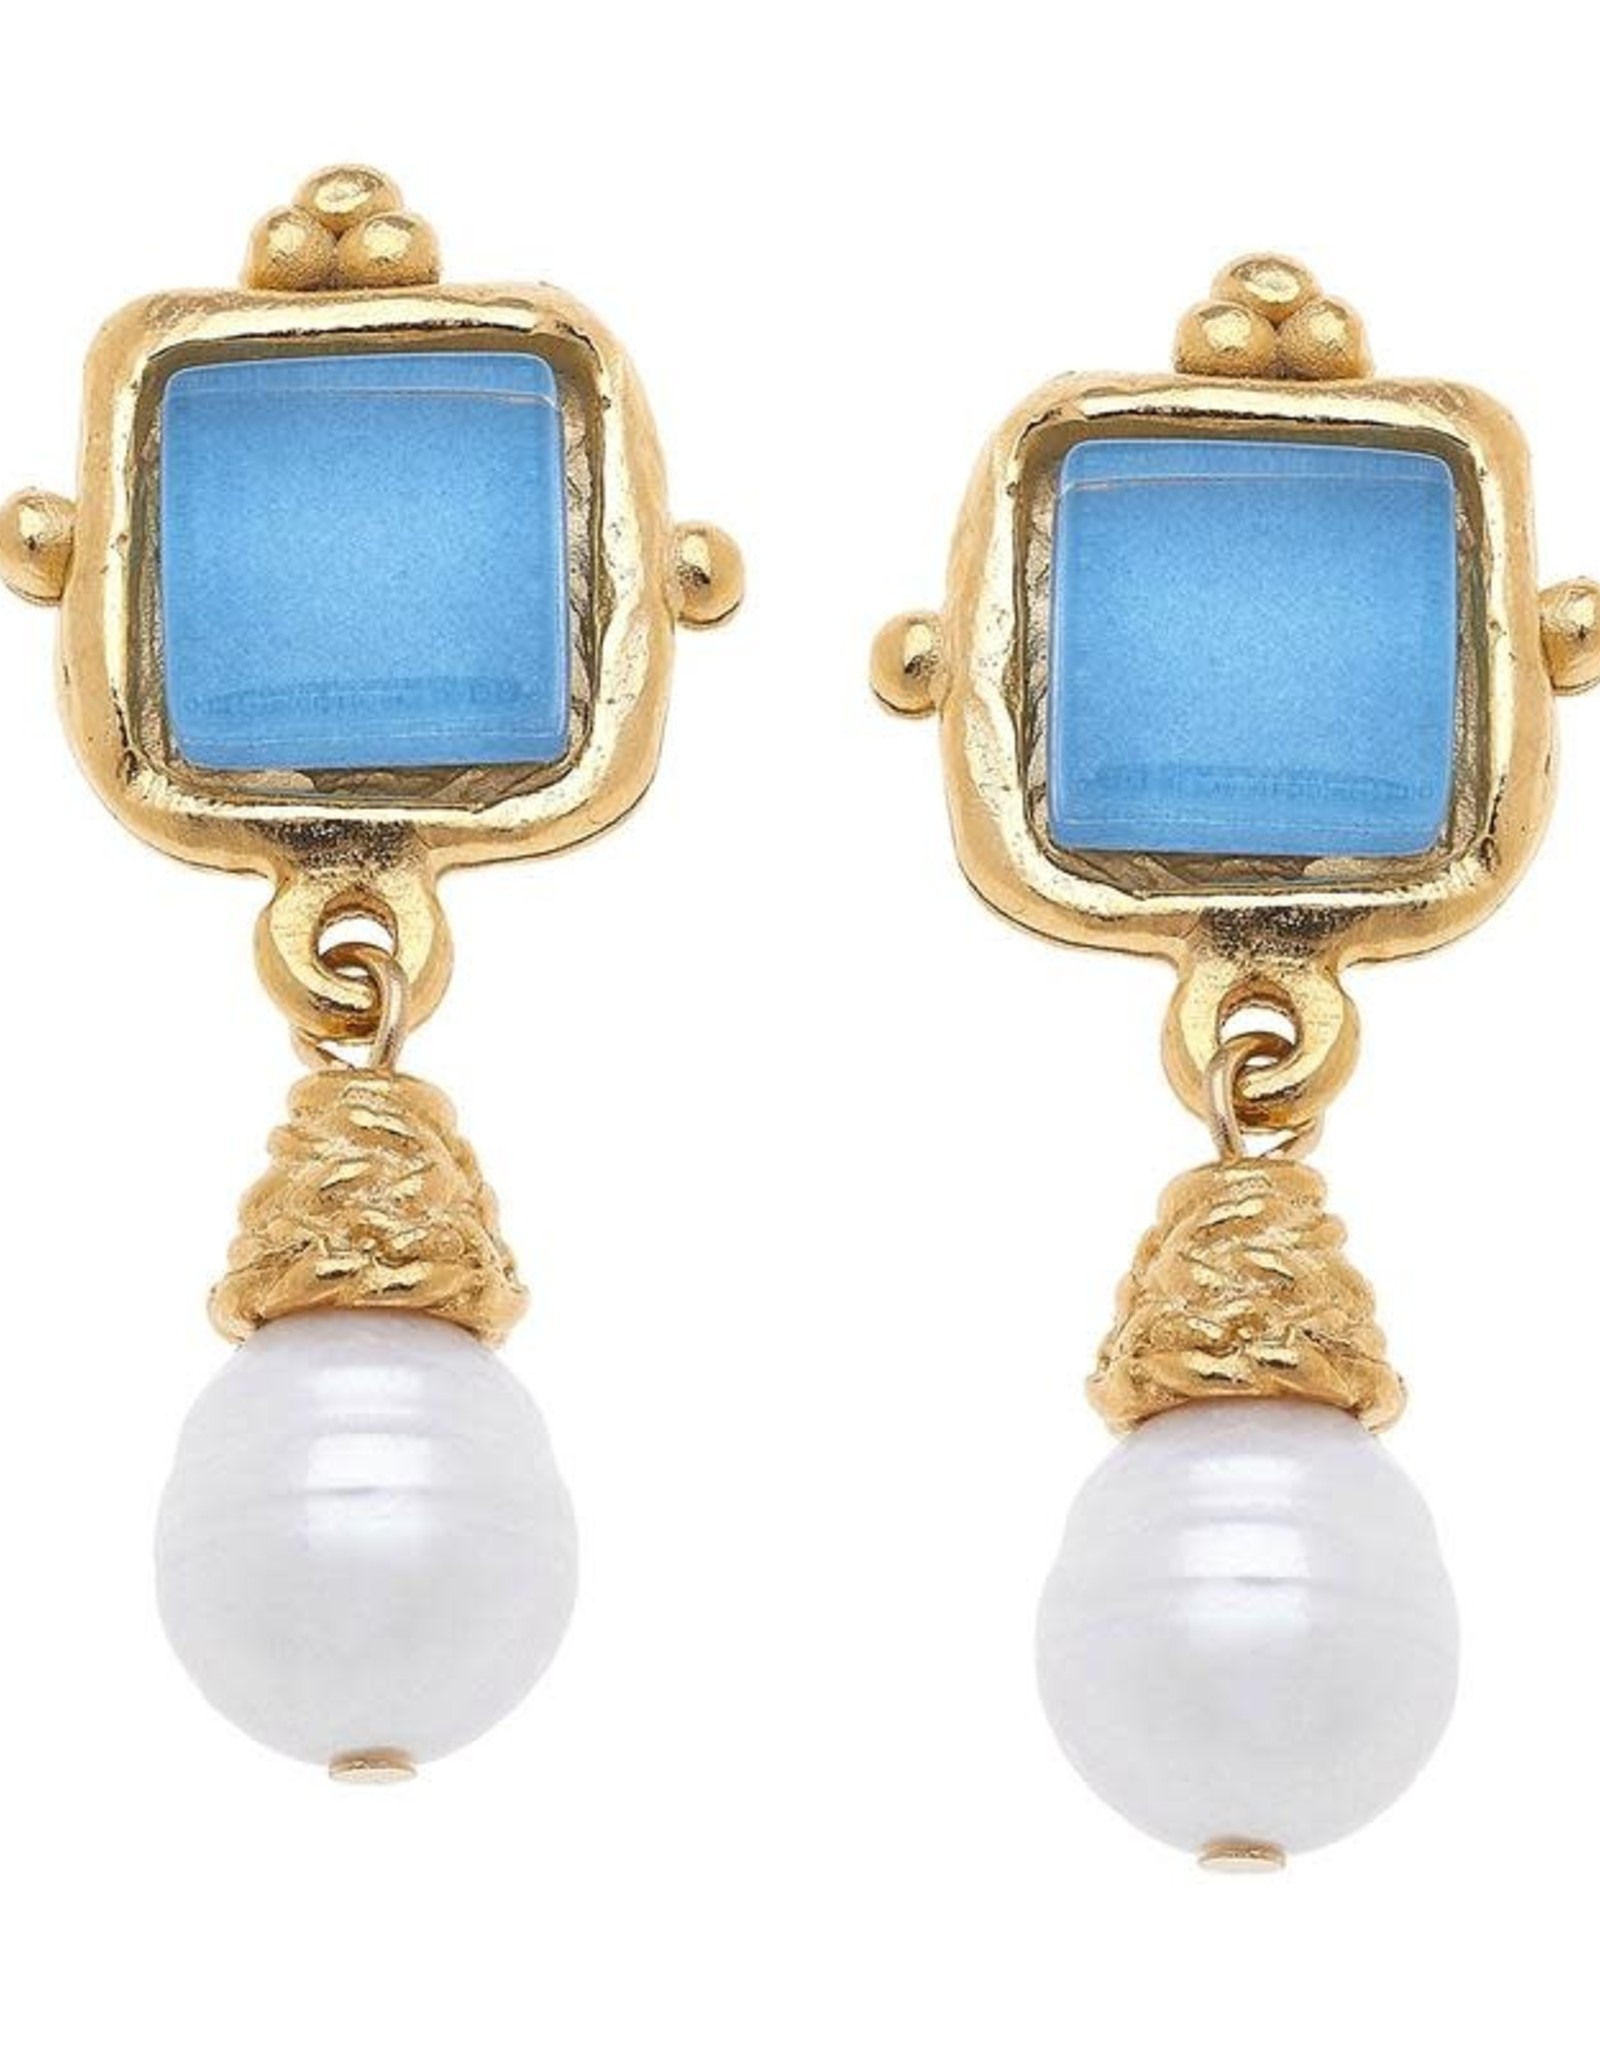 Susan Shaw Shaw Earrings GOLD Square/BLUE Glass/PearlDrop